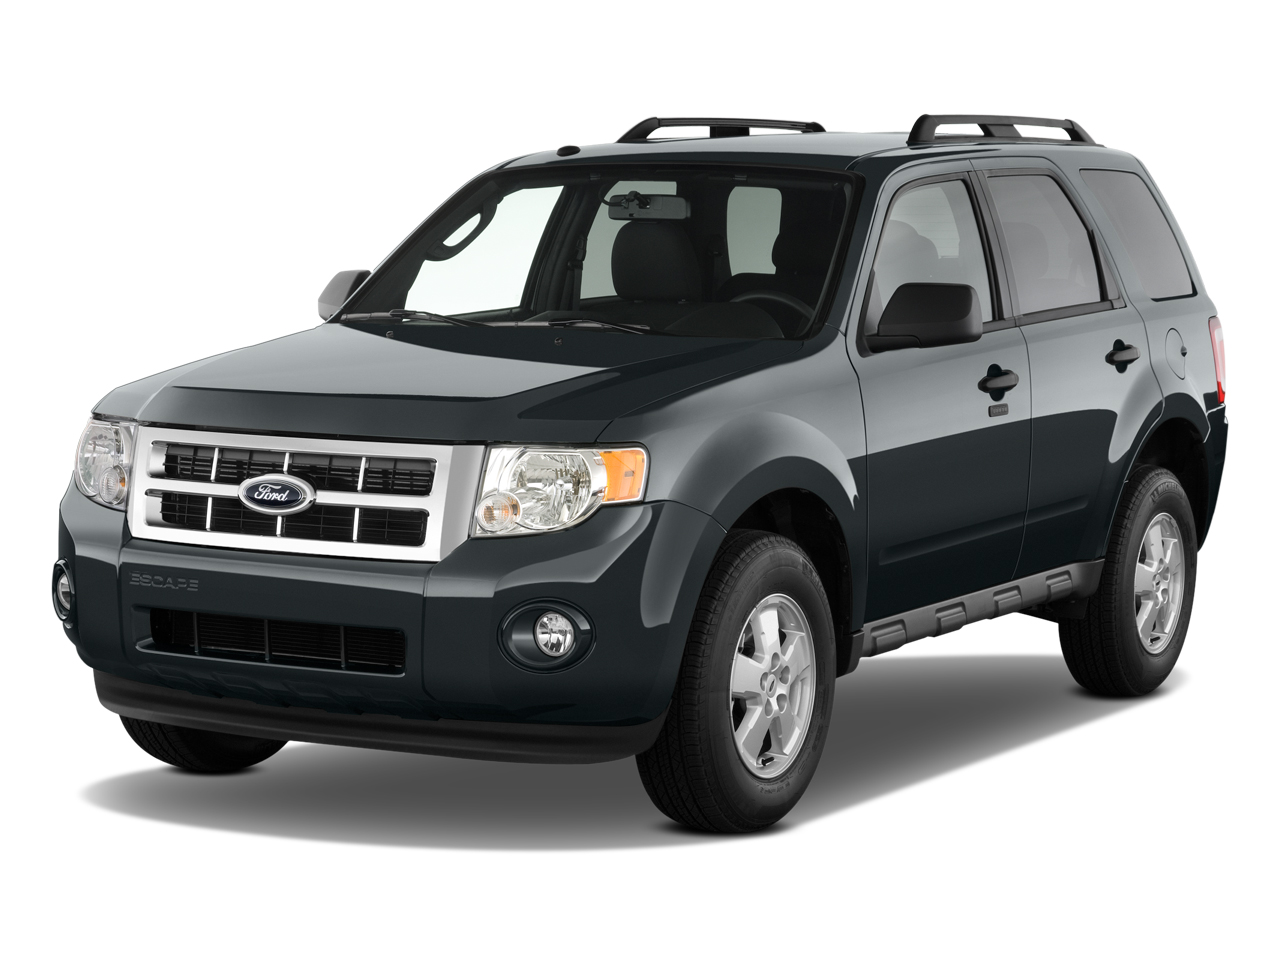 2011 ford escape fwd 4 door xlt angular front exterior view 100323238. Black Bedroom Furniture Sets. Home Design Ideas